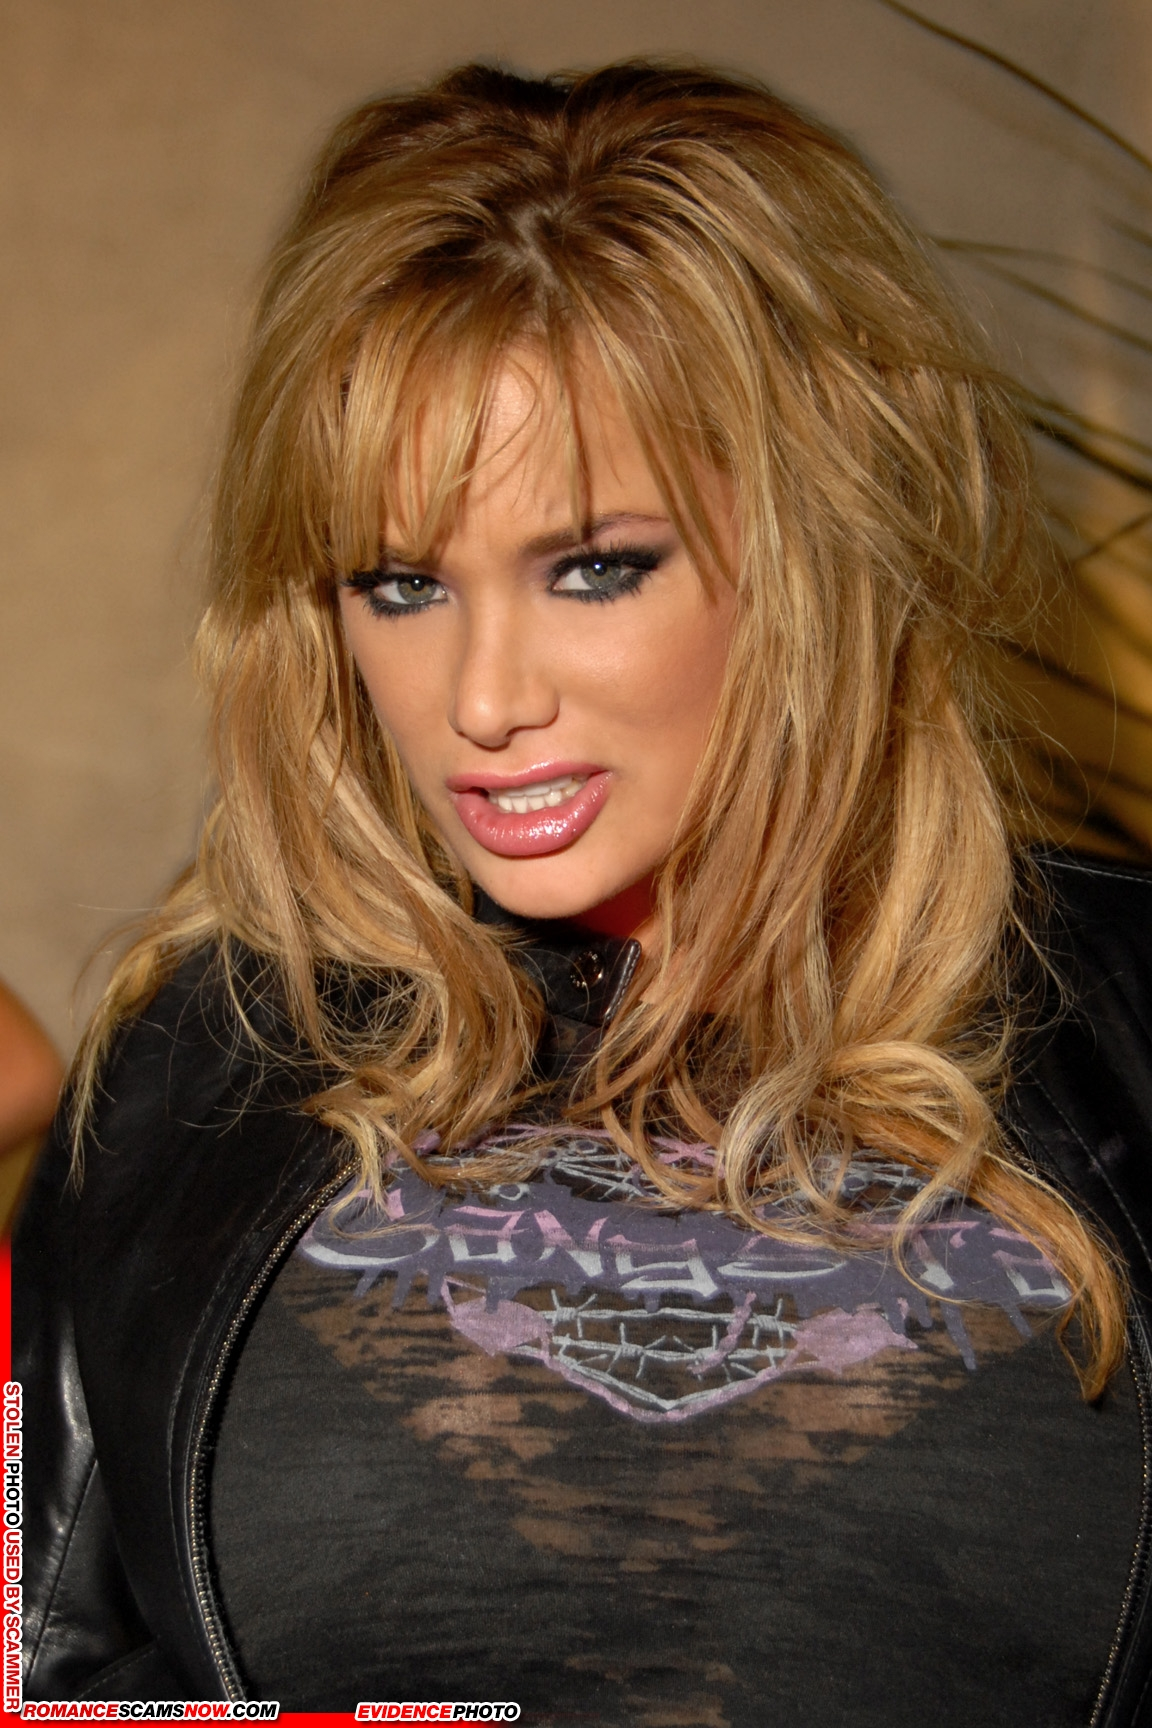 KNOW YOUR ENEMY: Shyla Stylez - Do You Know This Girl? 1